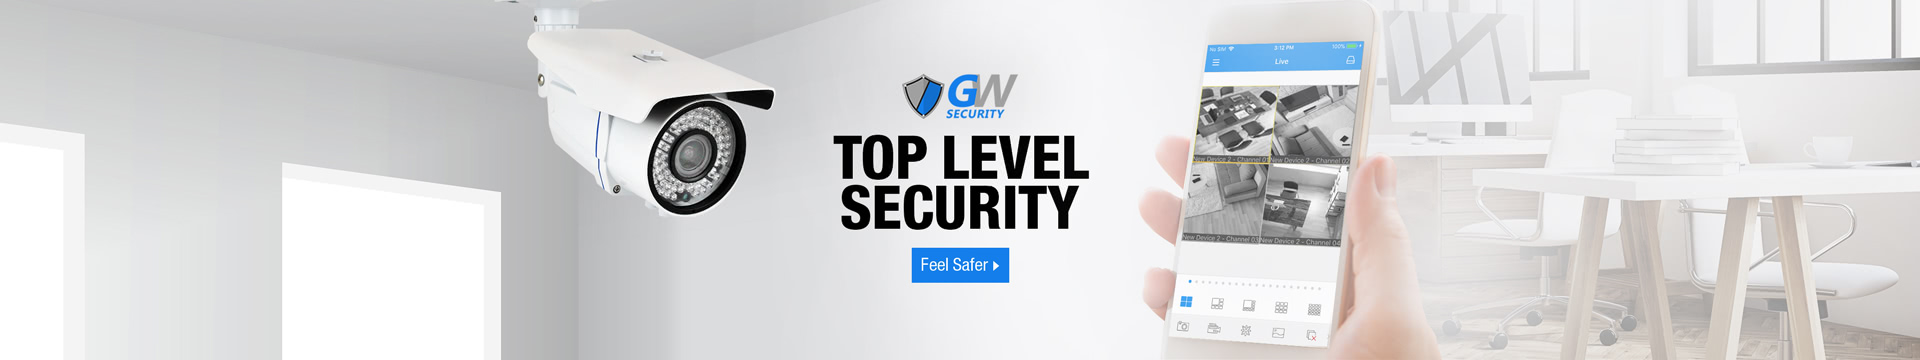 TOP LEVEL SECURITY